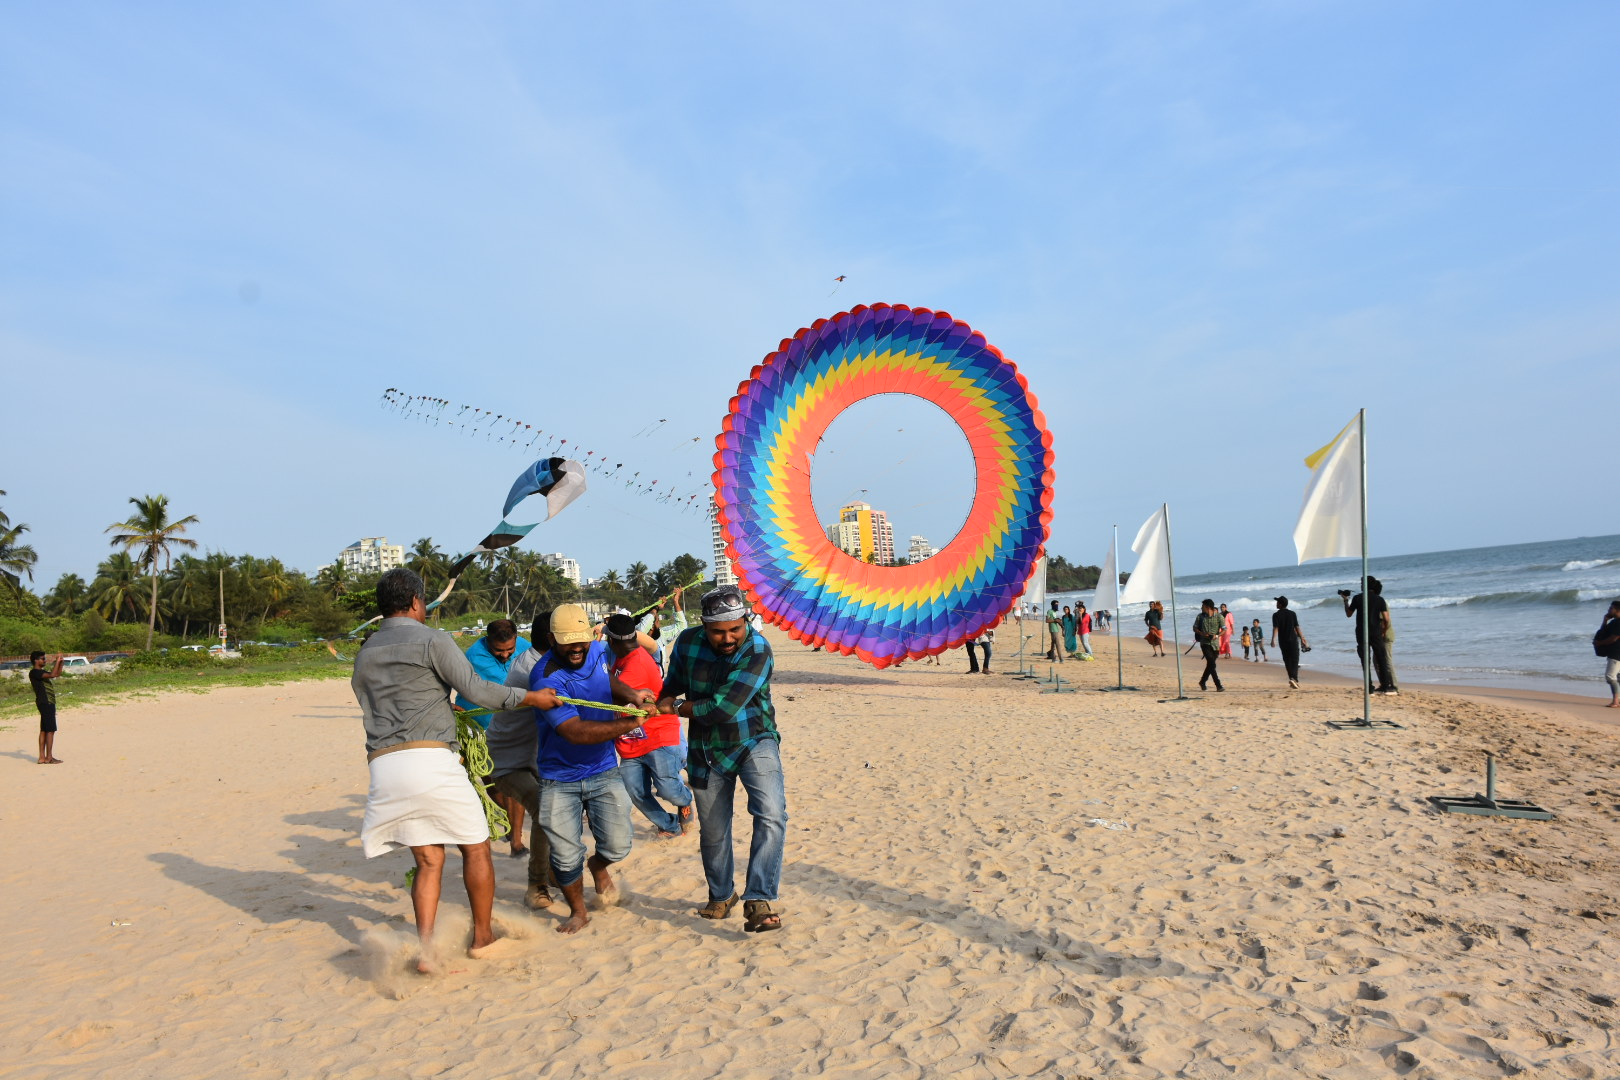 Kite festival in Panambur Beach